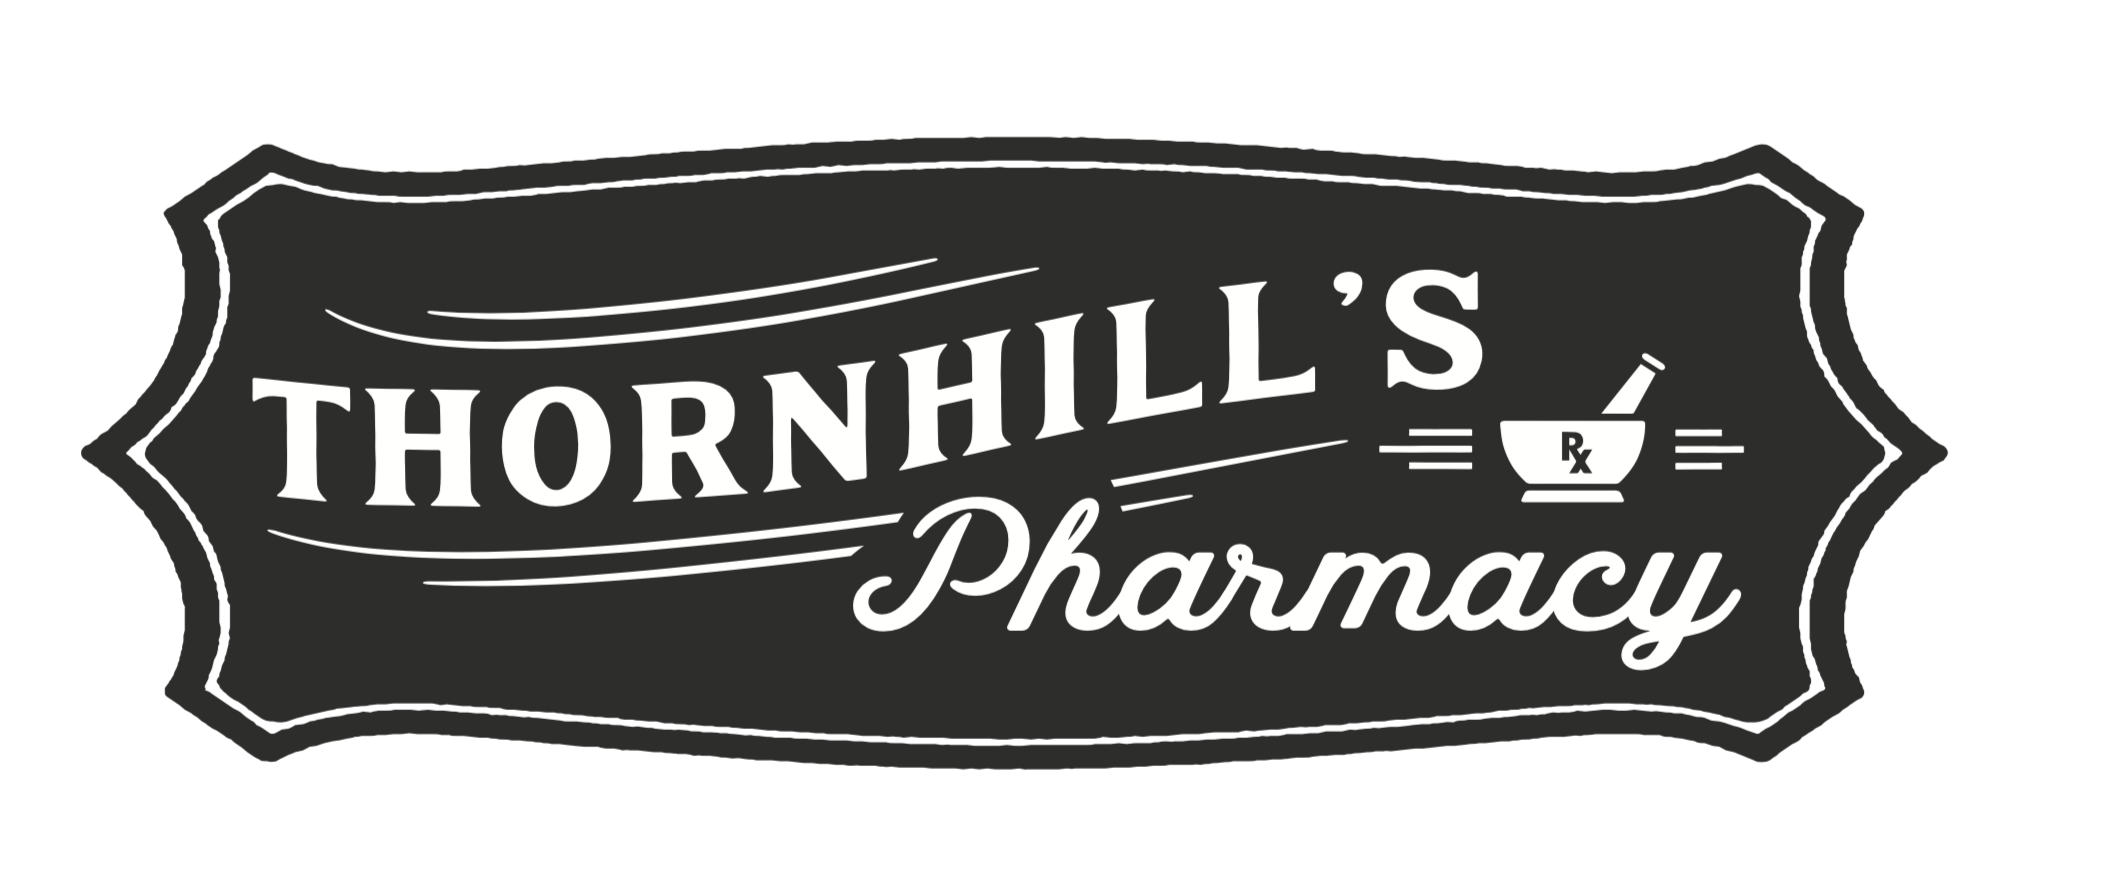 Thornhill's Pharmacy